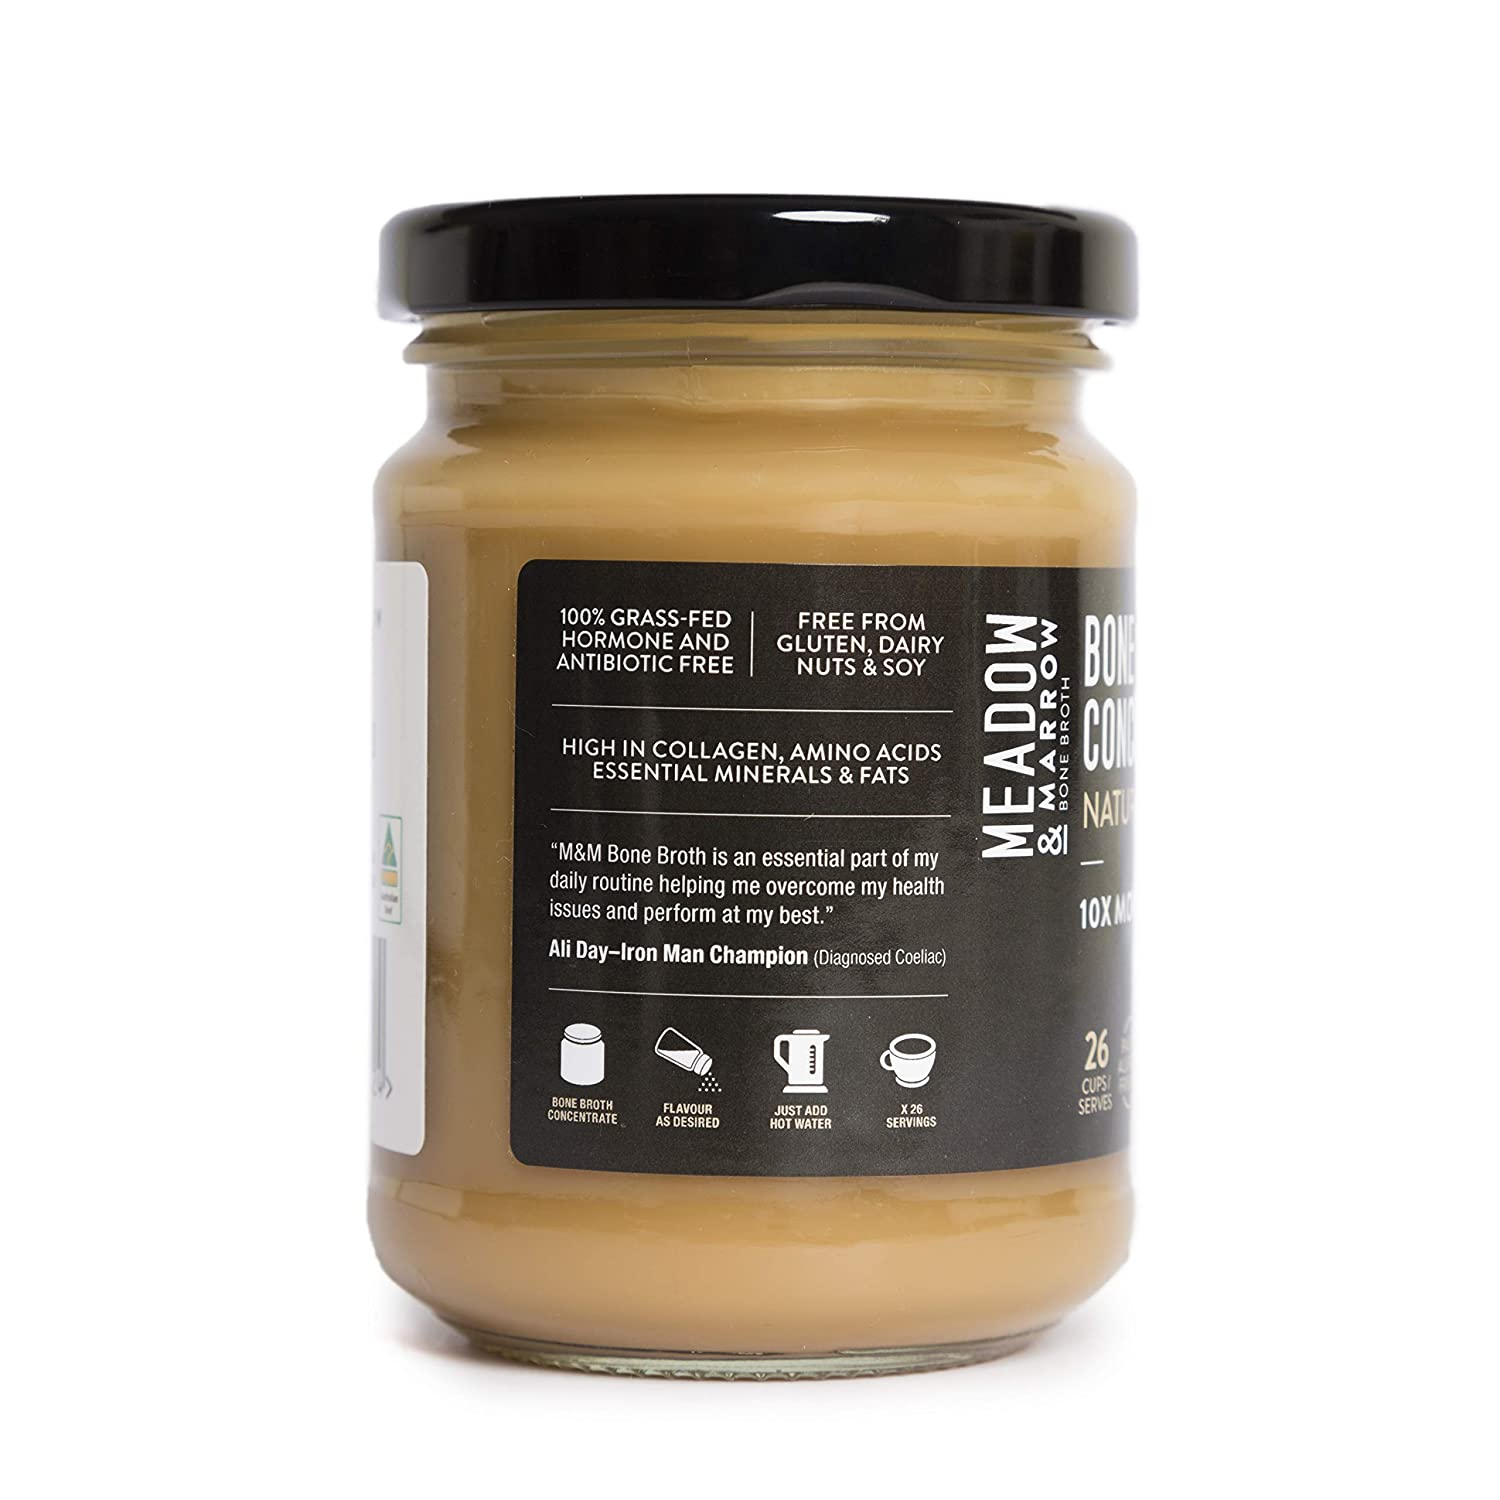 Meadow & Marrow Beef Bone Broth Concentrate - Natural Flavour - 260 grams - Australian Grass Fed Beef - 10 X MORE Amino Acids/G* - Free from Gluten, ...